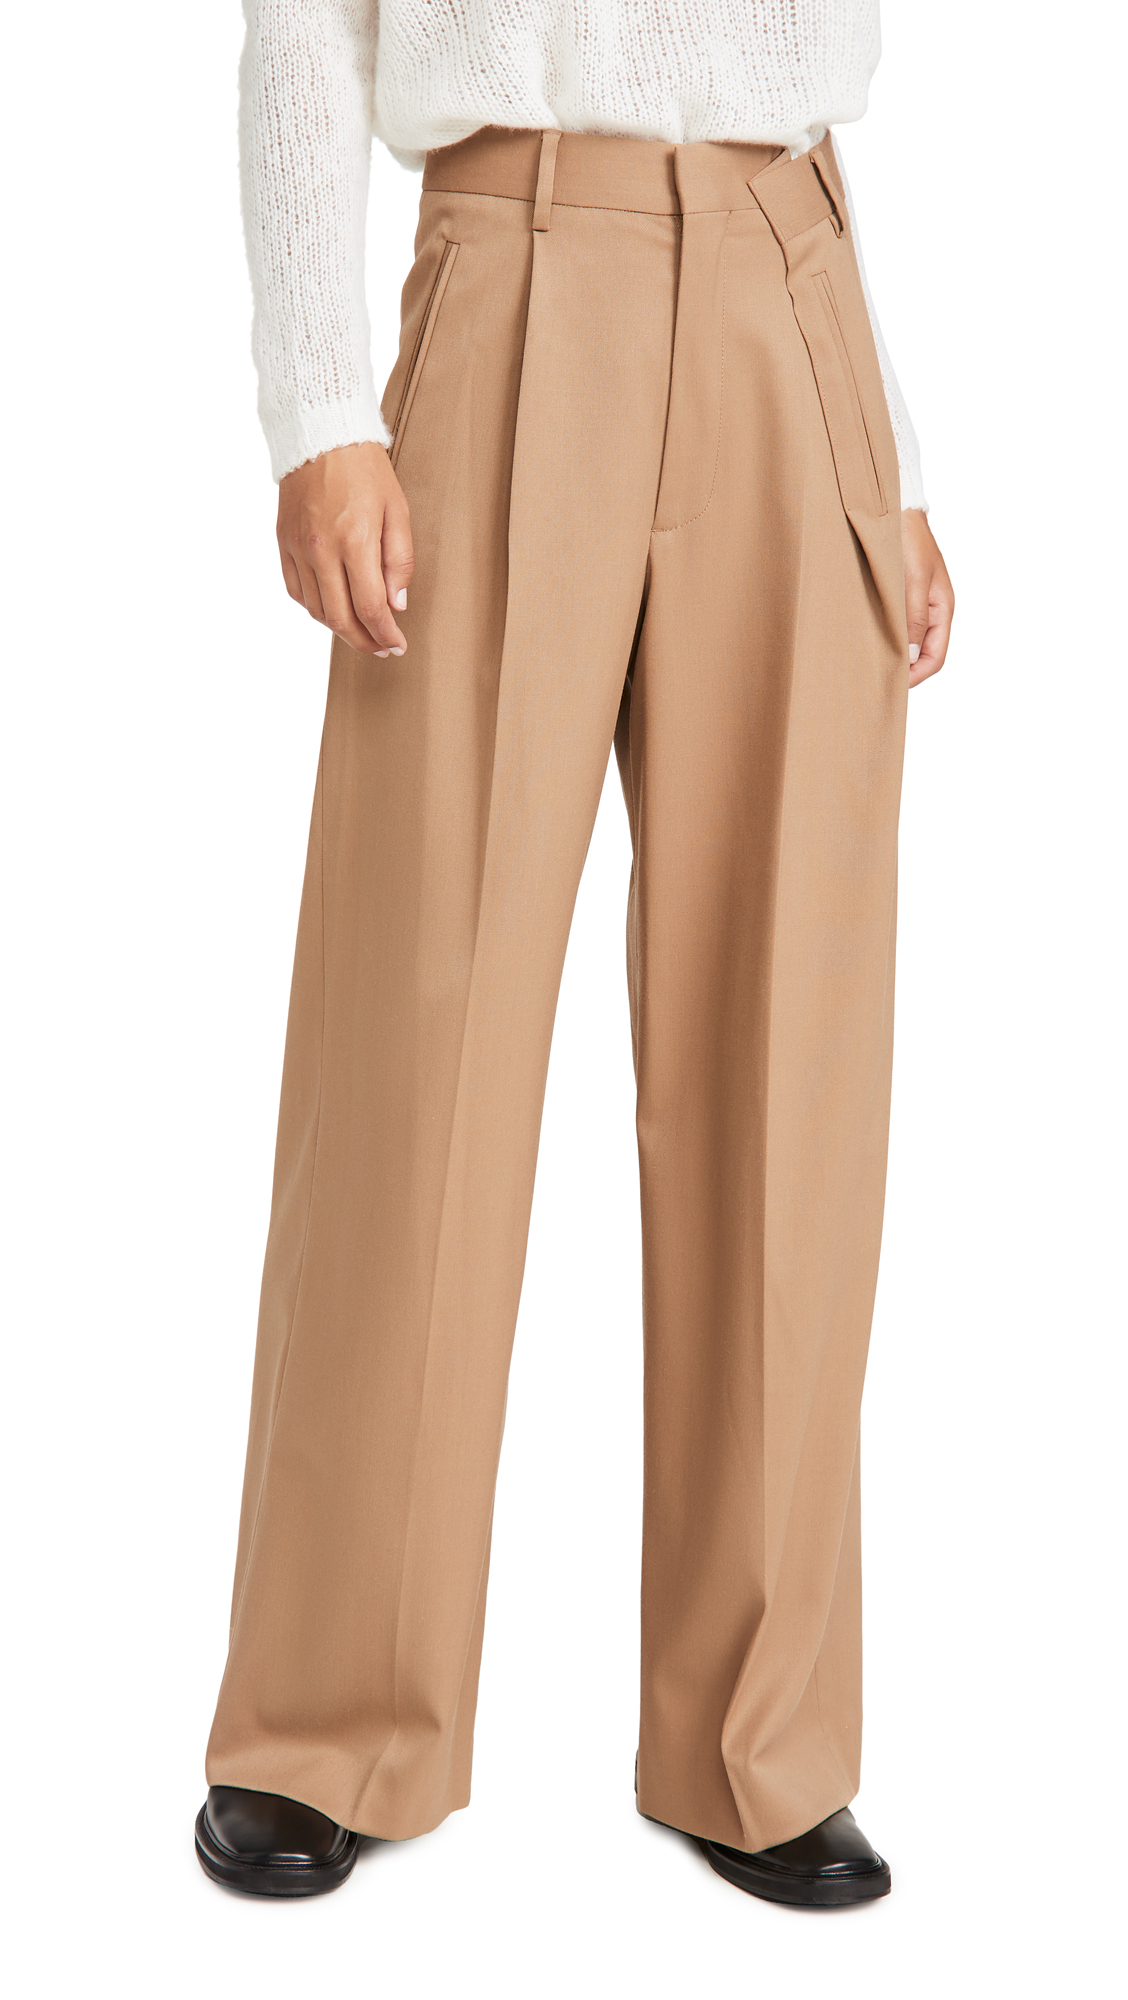 Mm6 Maison Margiela WIDE LEG PLEATED TROUSERS